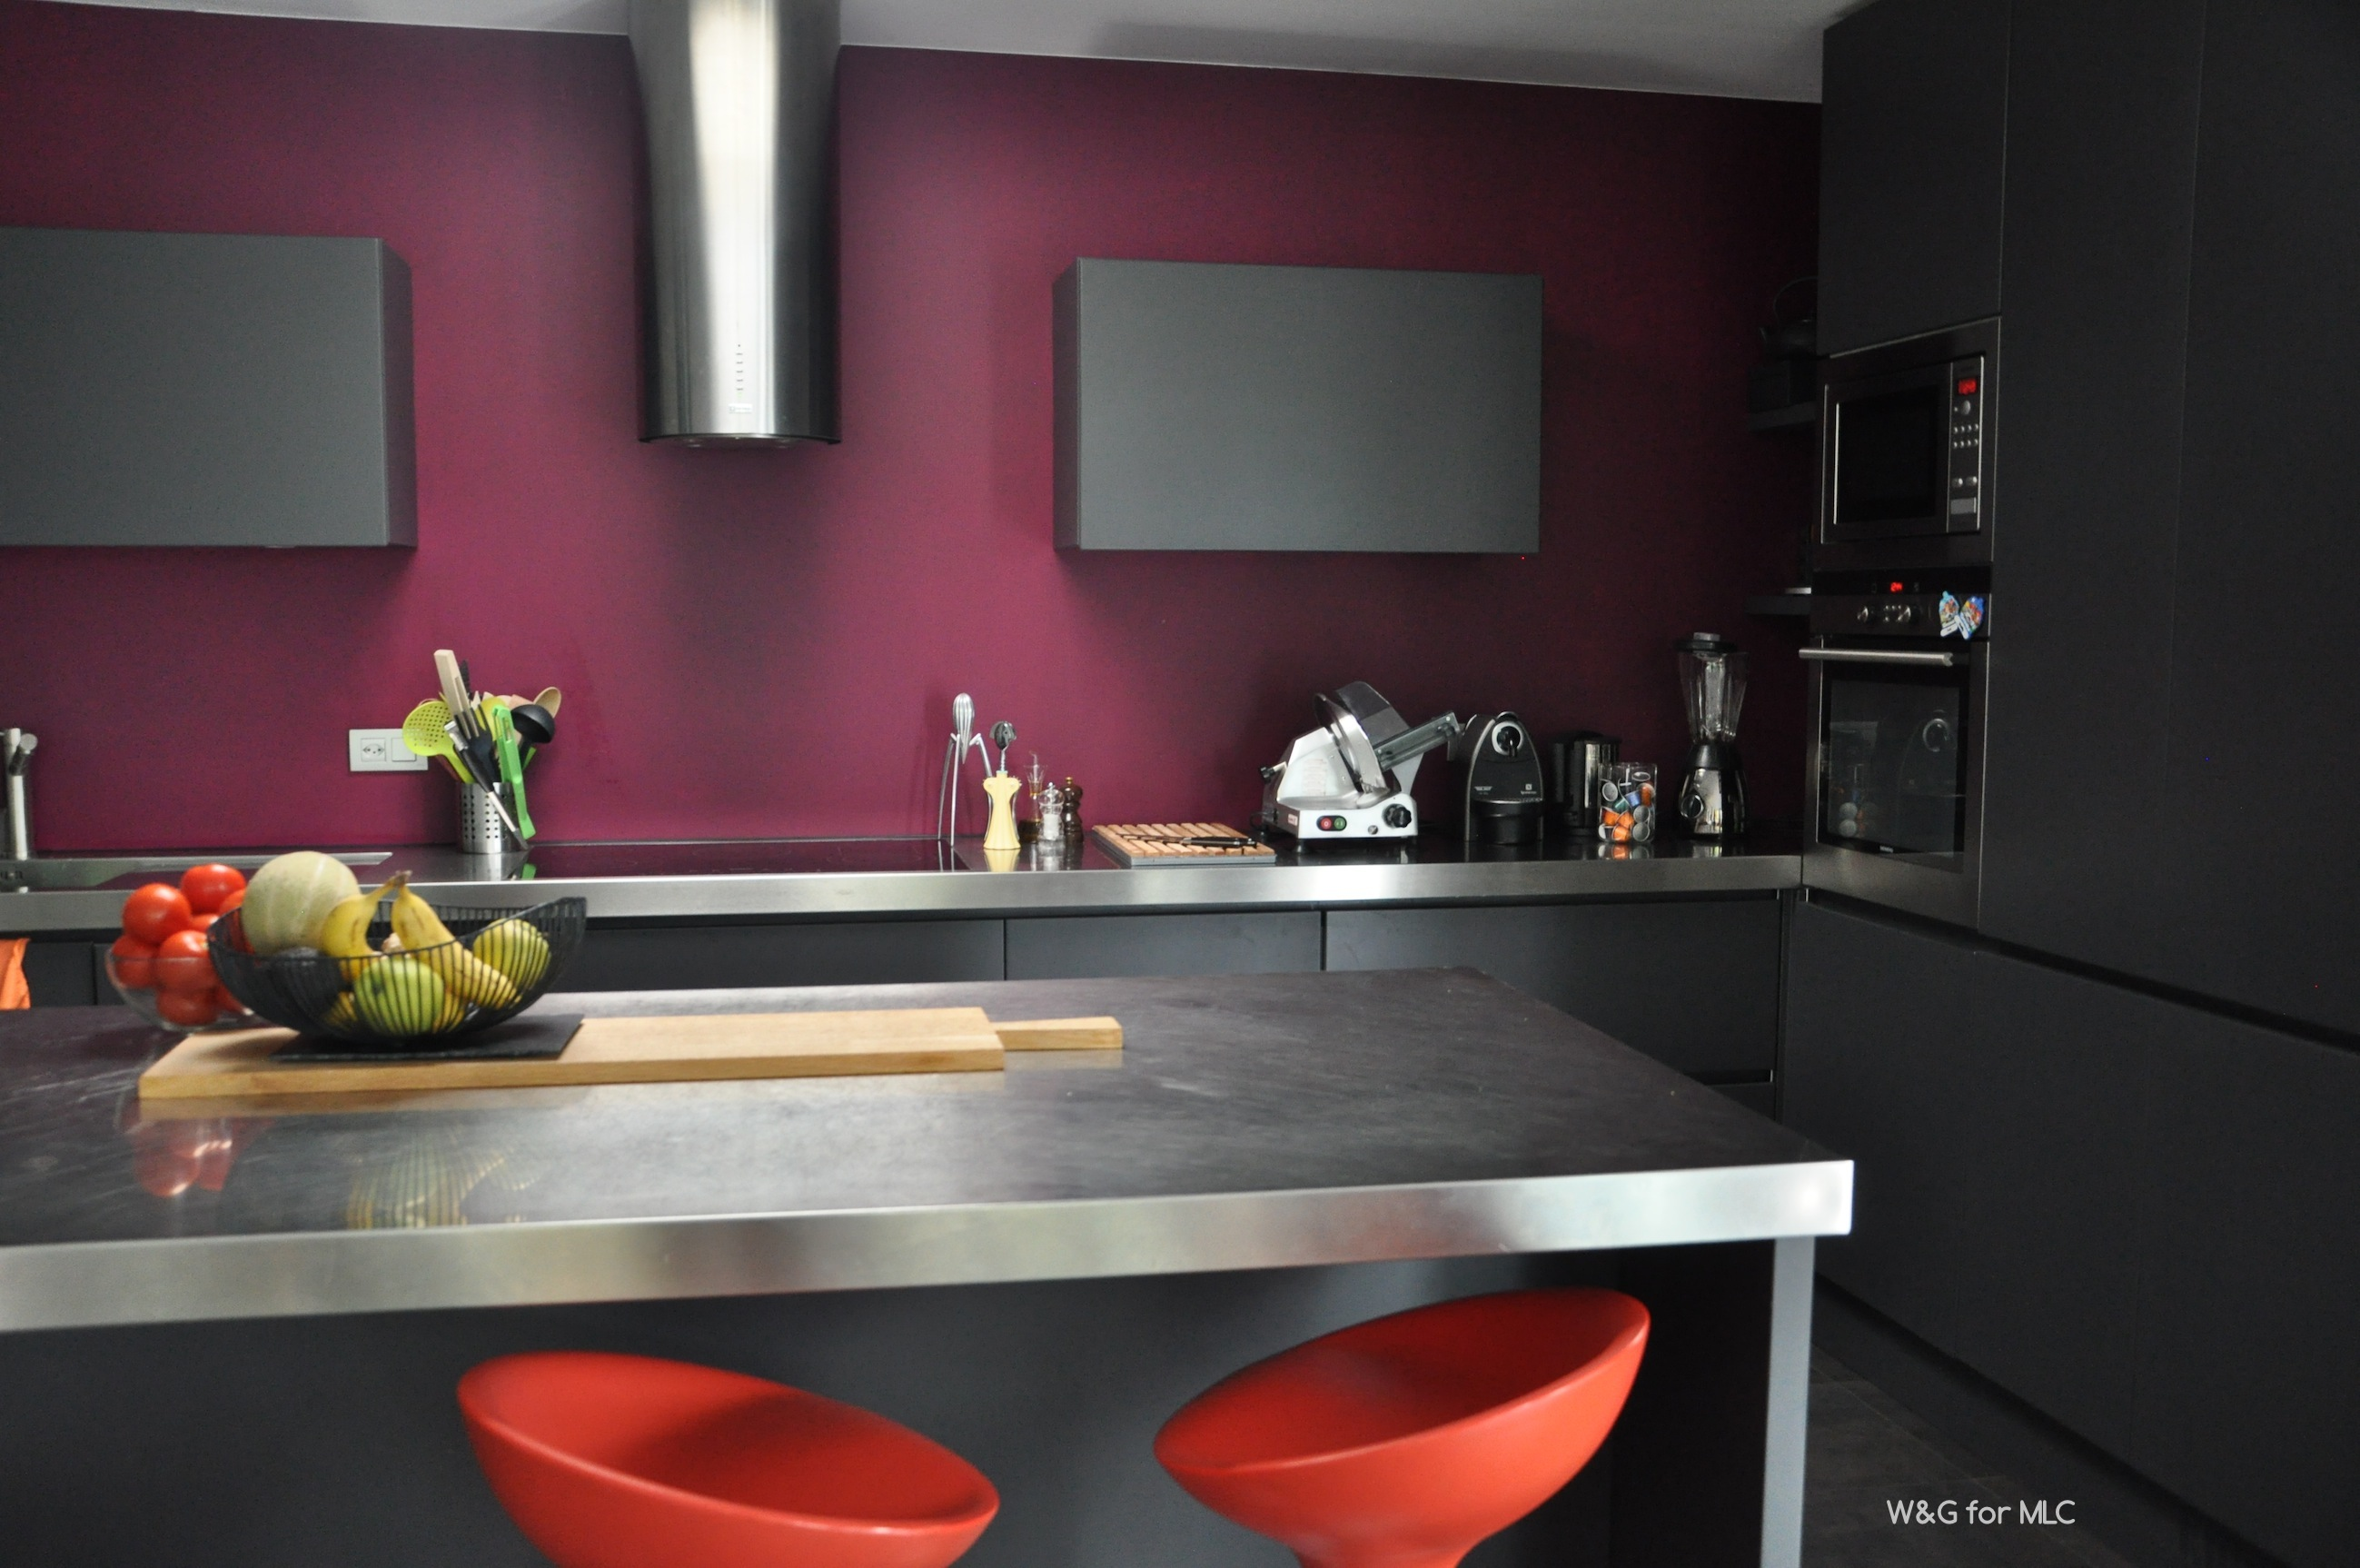 Cuisine anthracite sur fond fushia archives le blog d co for Villa interieur design